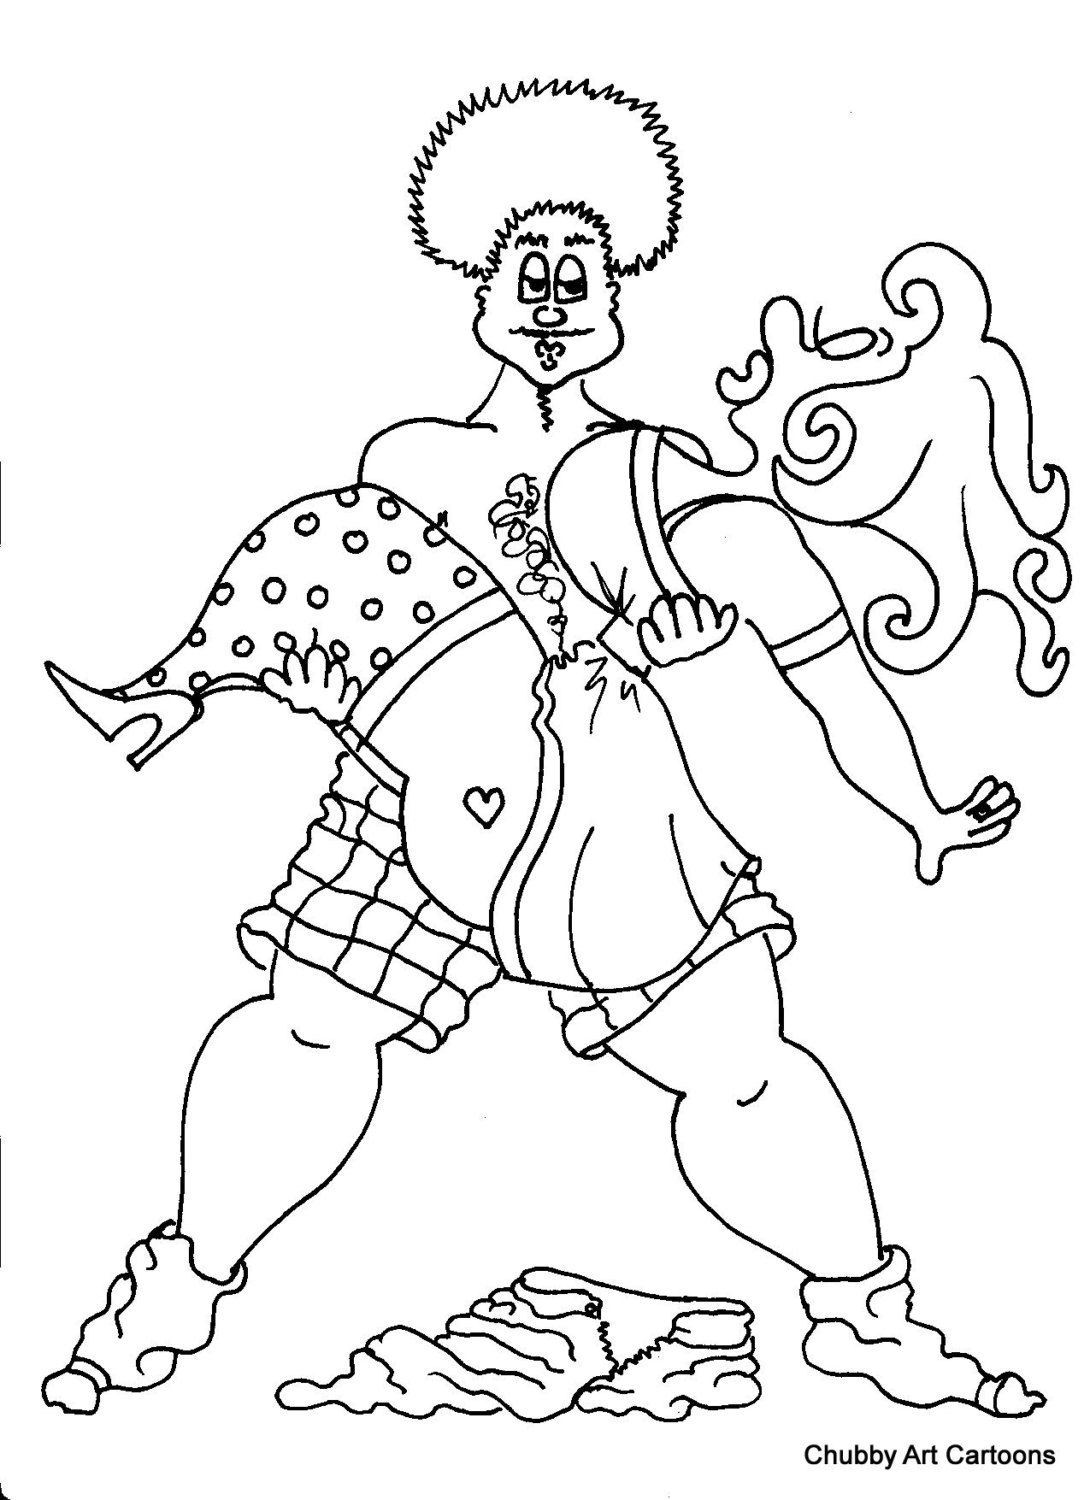 swept off her feet coloring page by chubby art cartoons